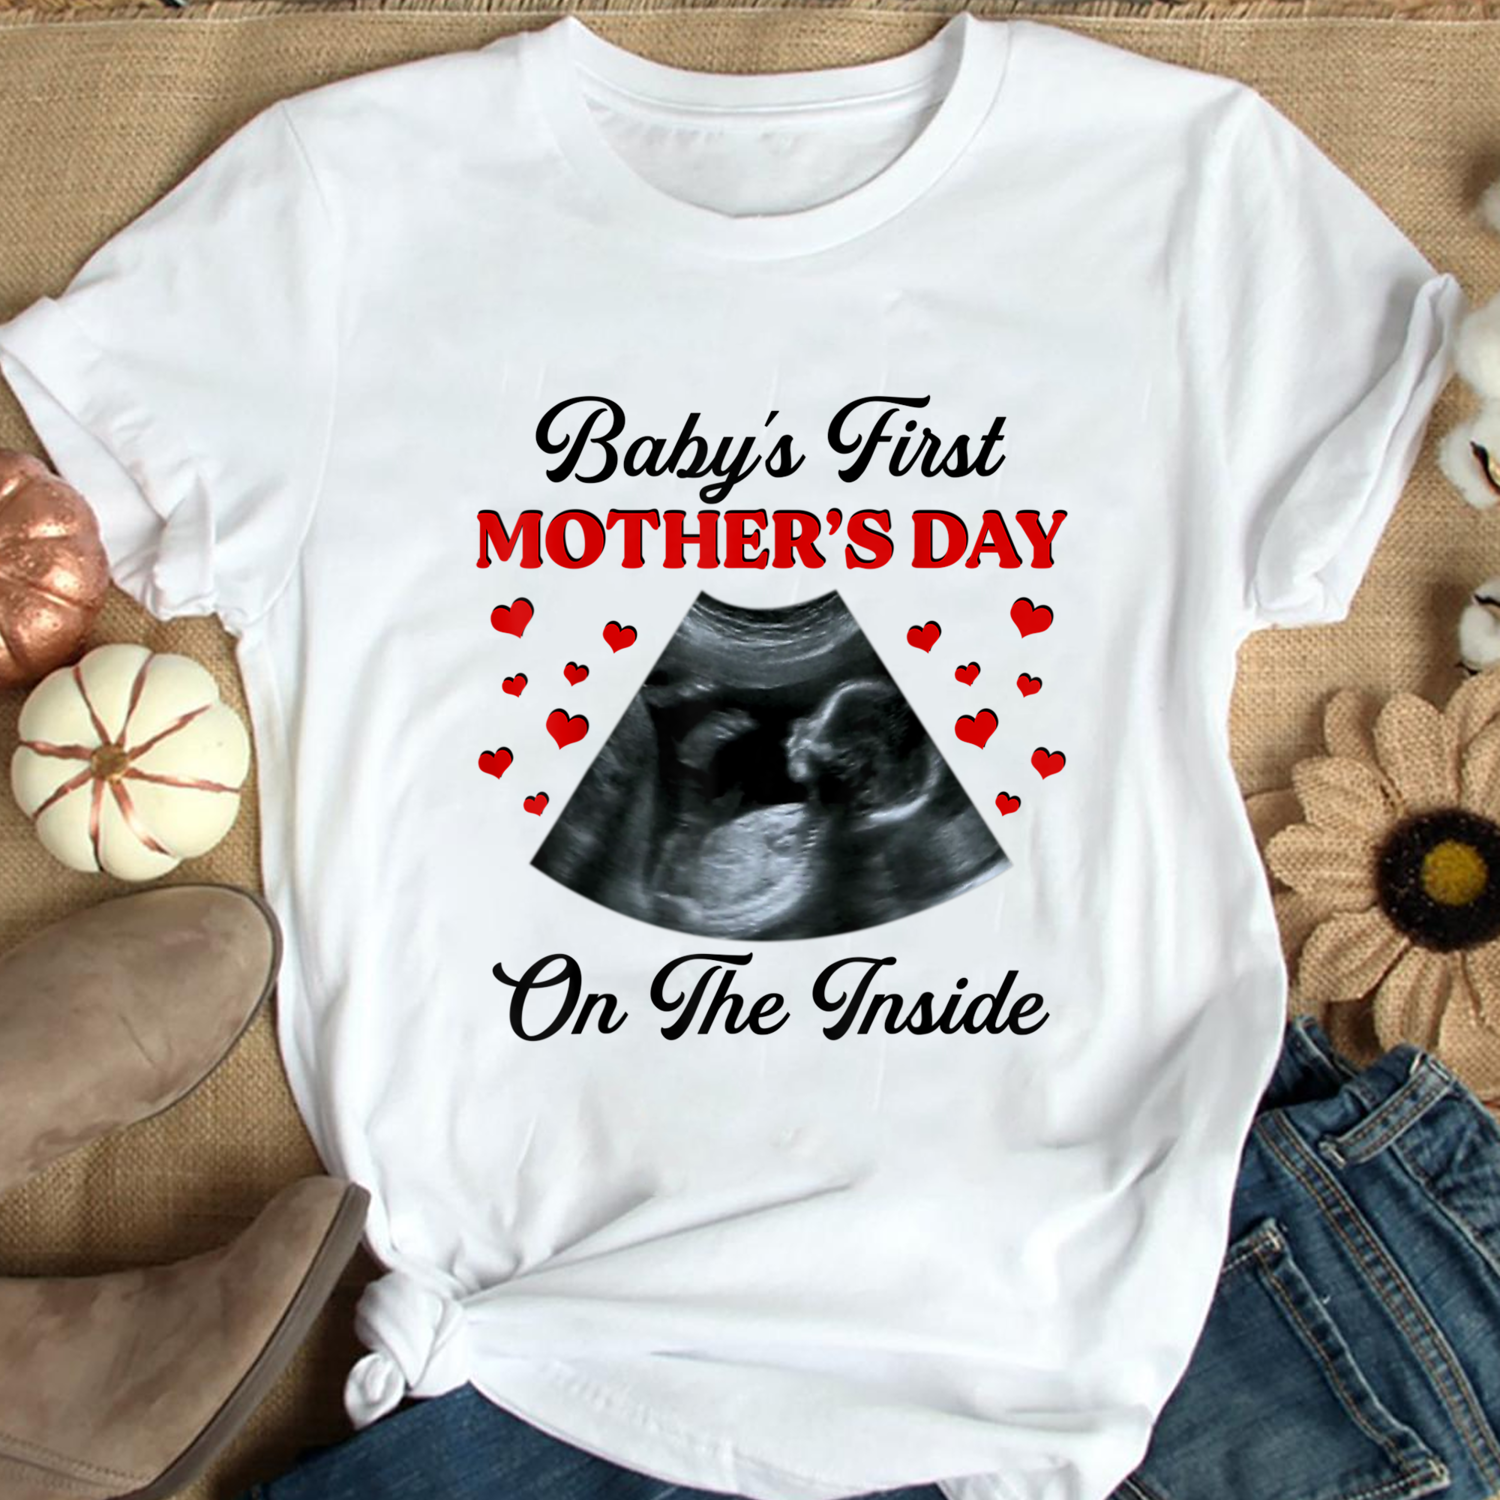 Baby's First Mother's Day On The Inside Ultrasonography Baby T shirt, Baby Shower Gift, Baby Reveal T shirt, New Mom Gift, Pregnancy Announcement Unisex Hoodies Sweatshirt Long Sleeve V Neck T Shirt